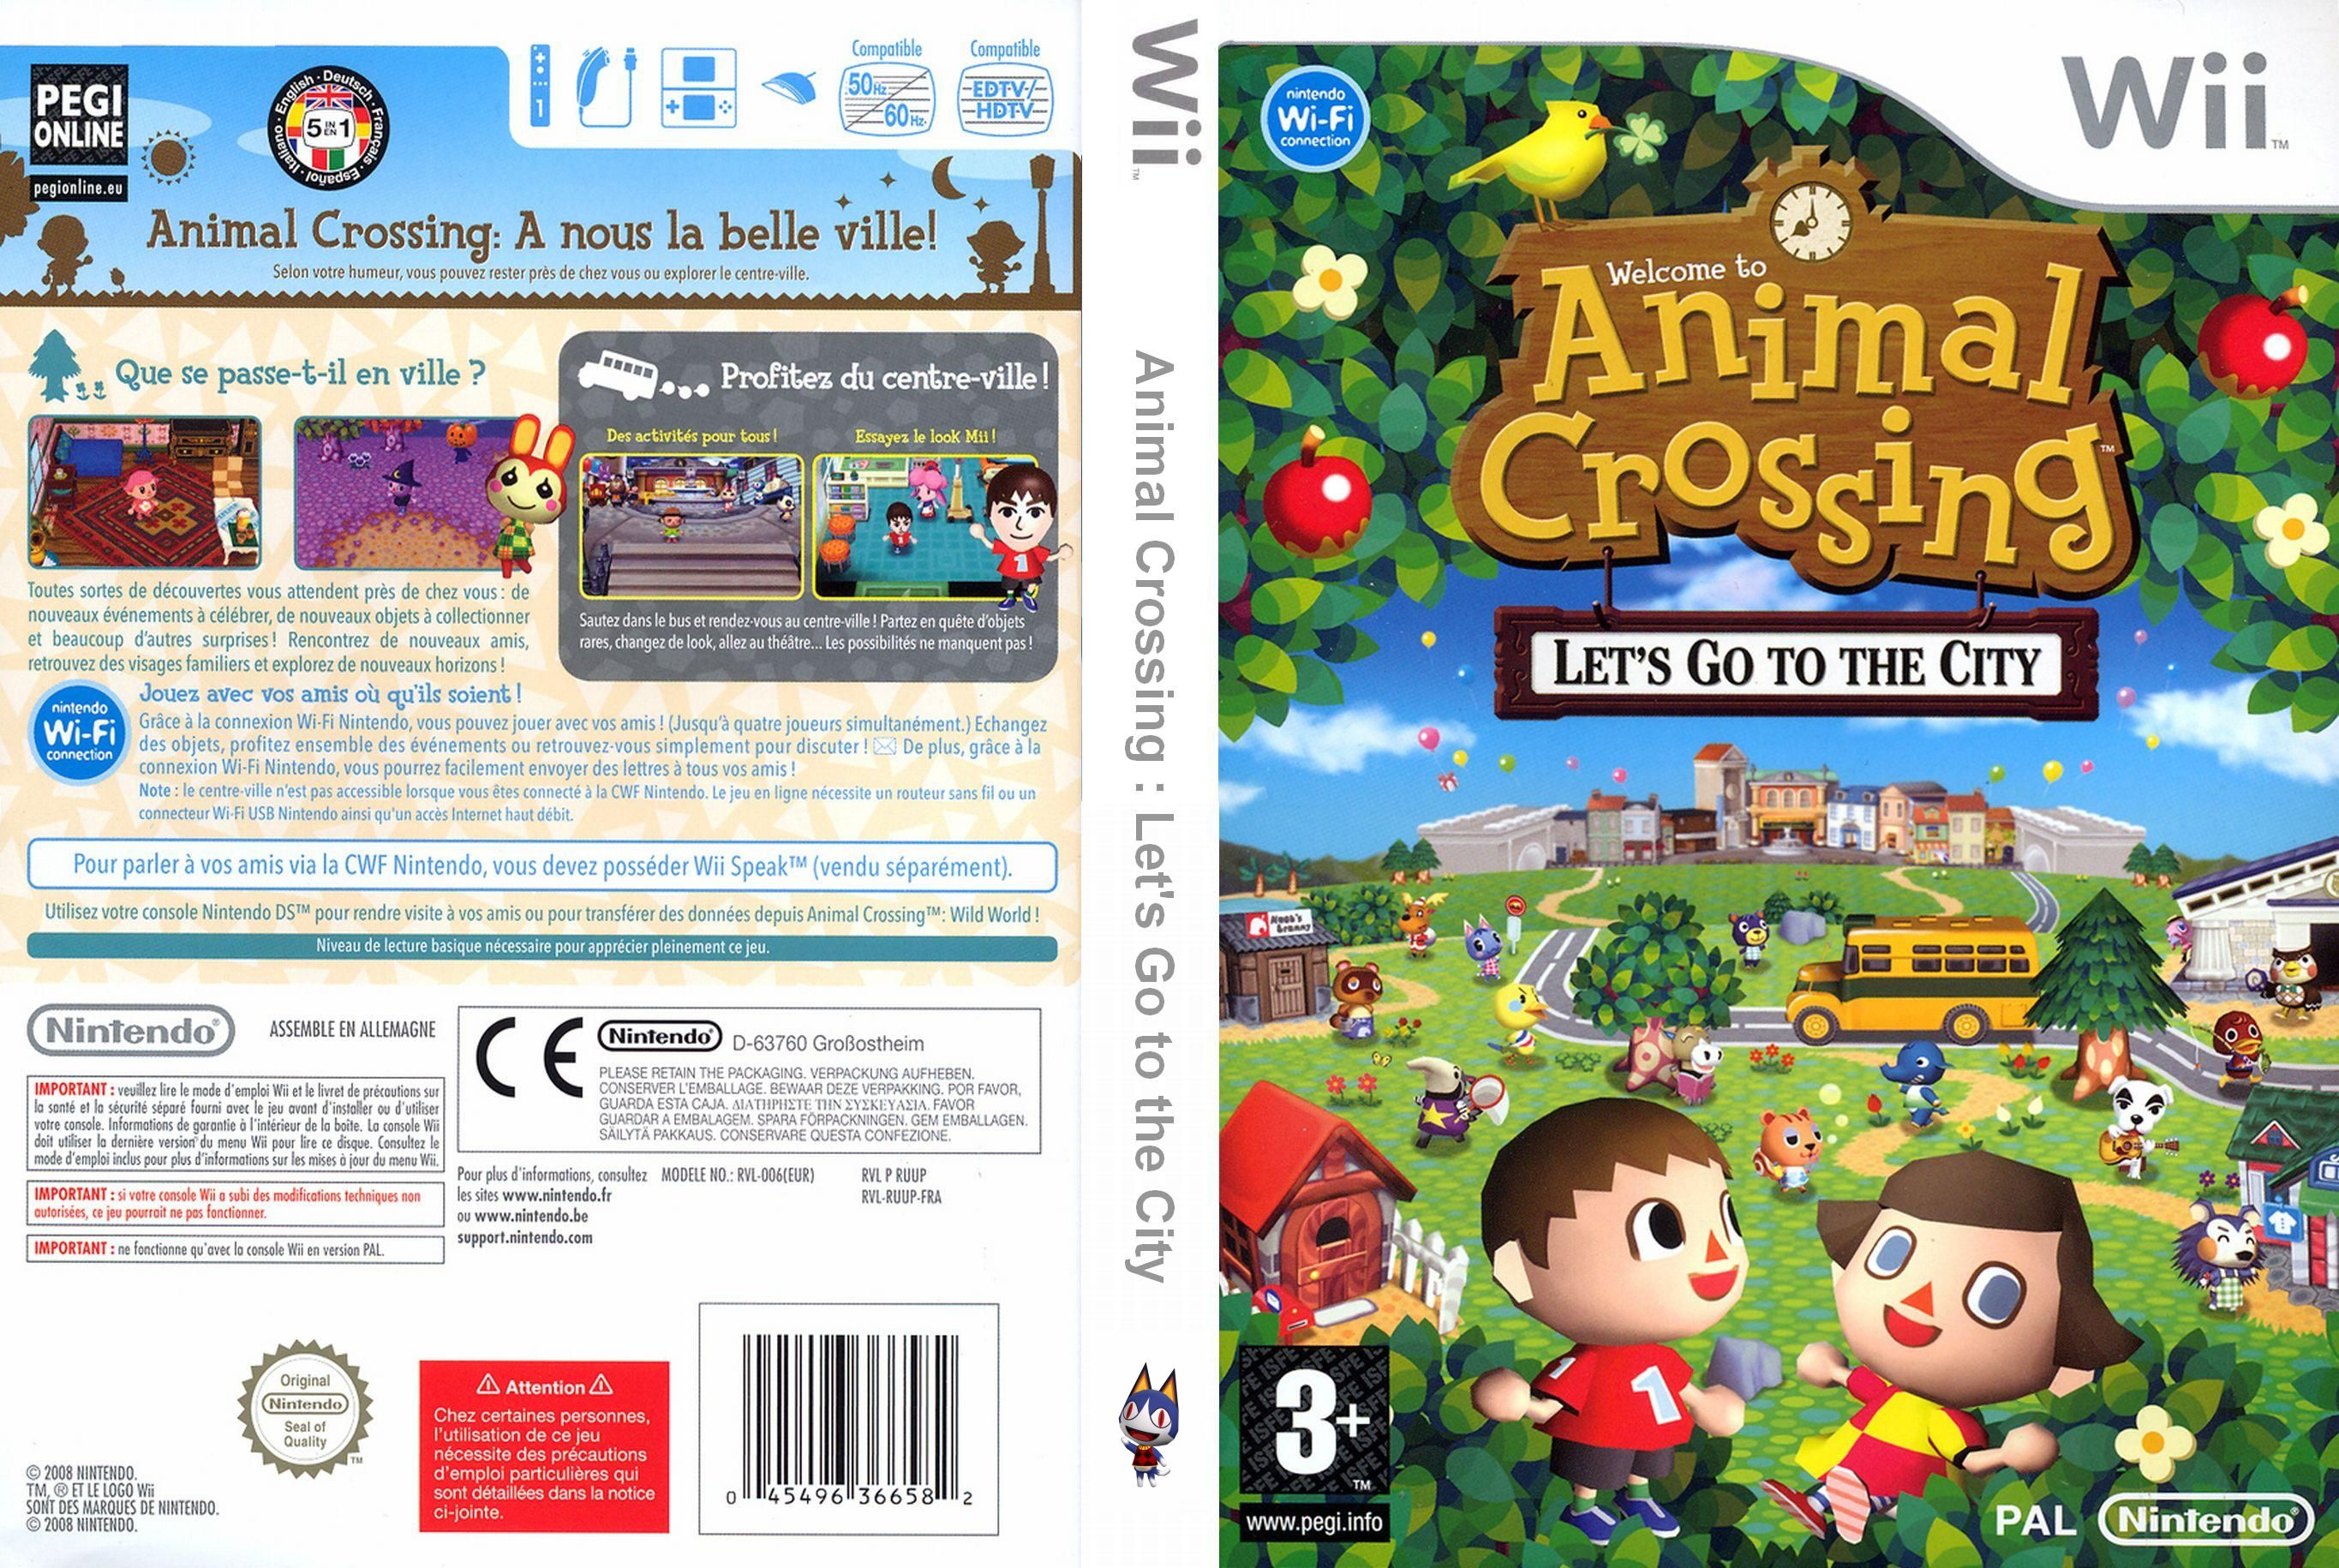 Pochette jeu wii - Jaquette wii Animal Crossing Let's Go to the City